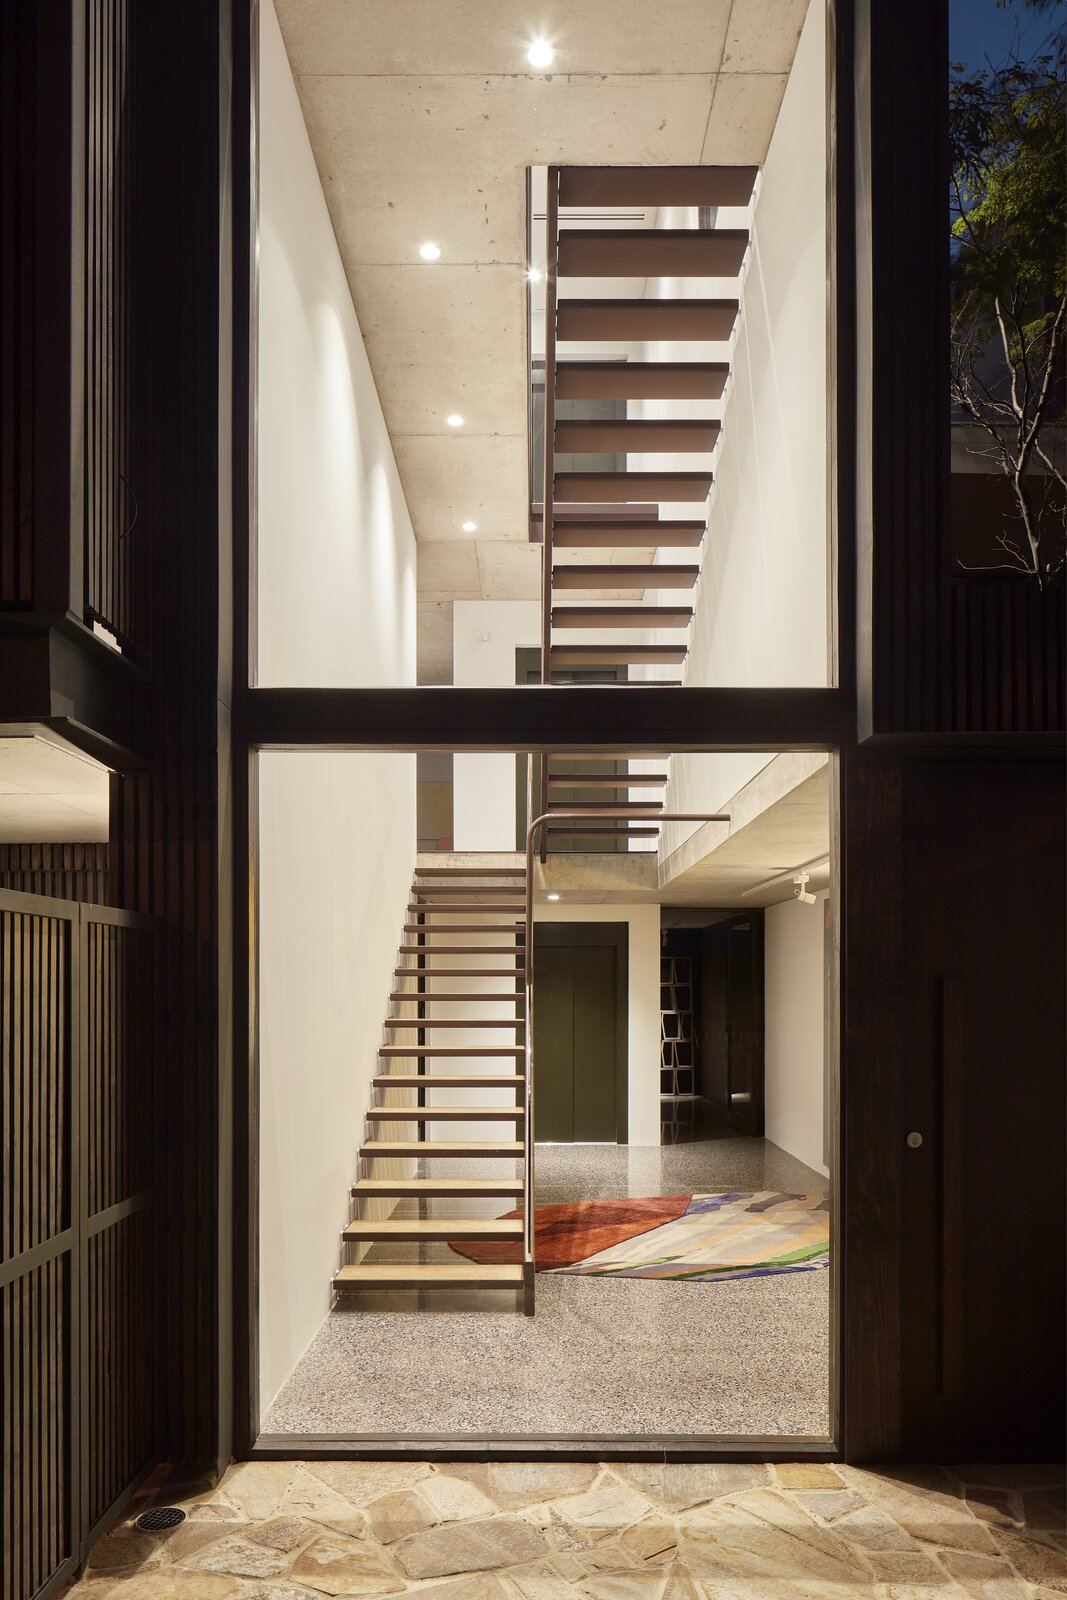 Staircase and Metal Railing  Photo 8 of 23 in Mechanized Shutters Protect This Australian Home From Prying Eyes from Shutter House